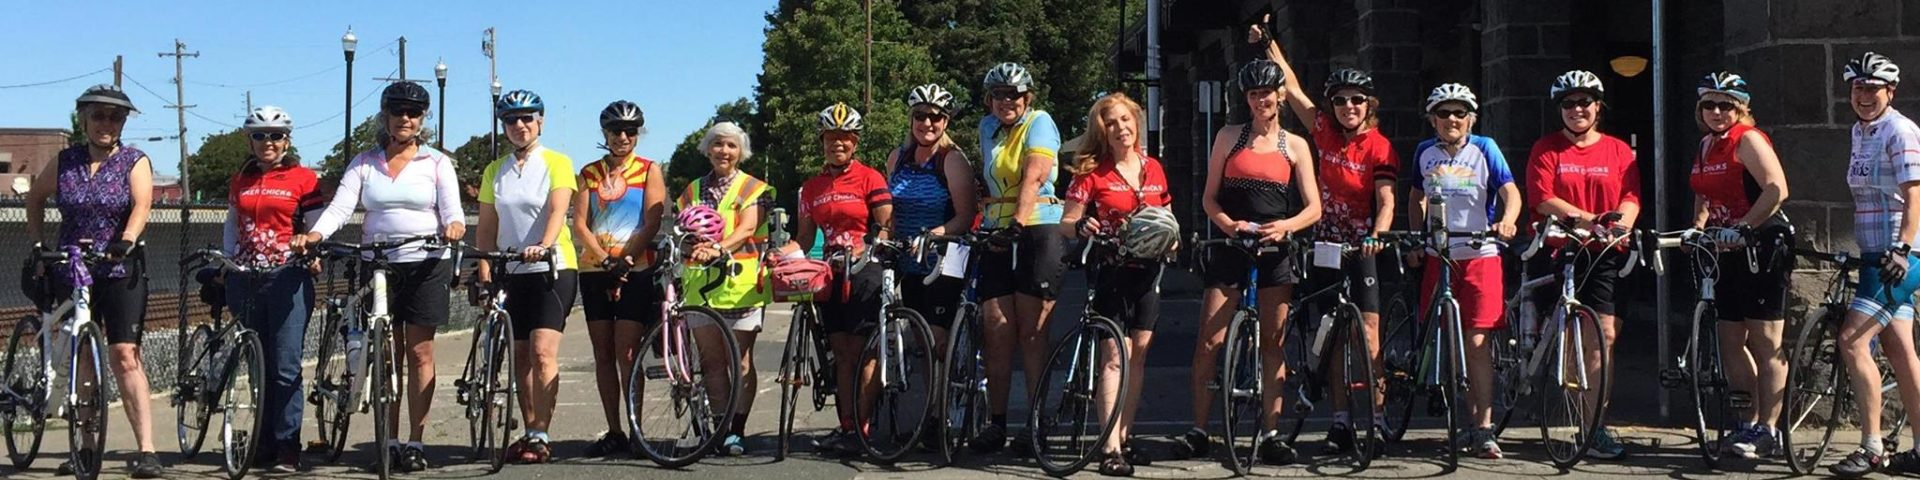 9846e409c Biker Chicks – Sonoma County Bicycle Coalition